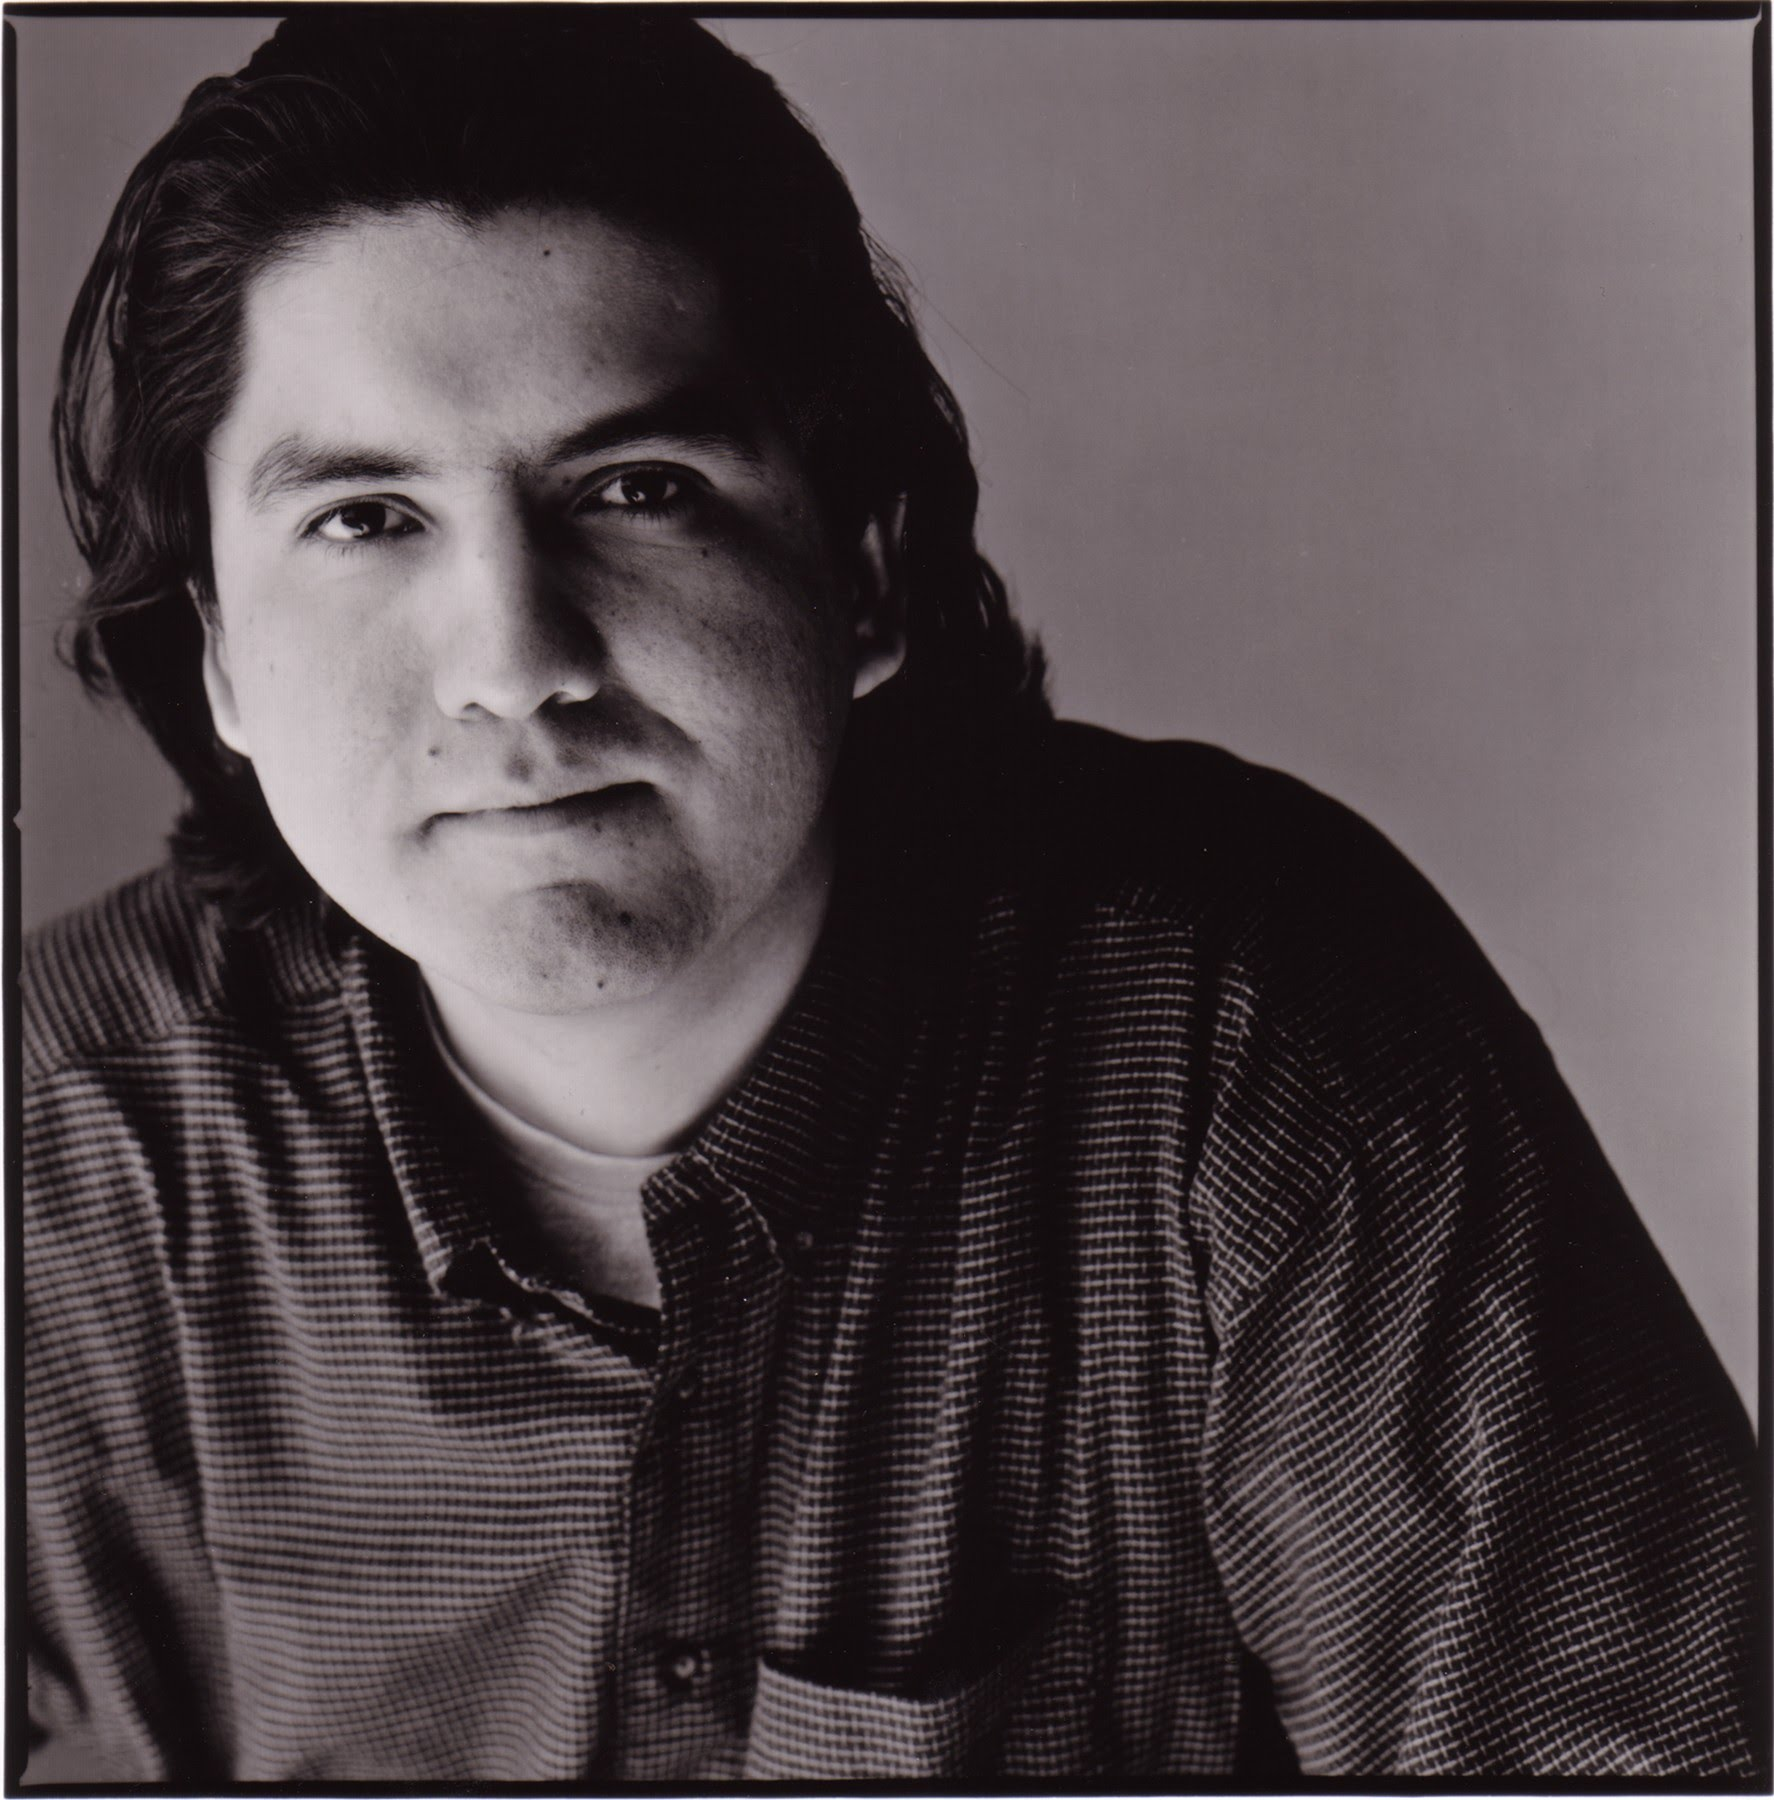 essays on flight by sherman alexie Essays on sherman alexie sherman alexie sherman alexie's, flight patterns flight by alexie sherman clearly shows how the two aspects can be involved in.